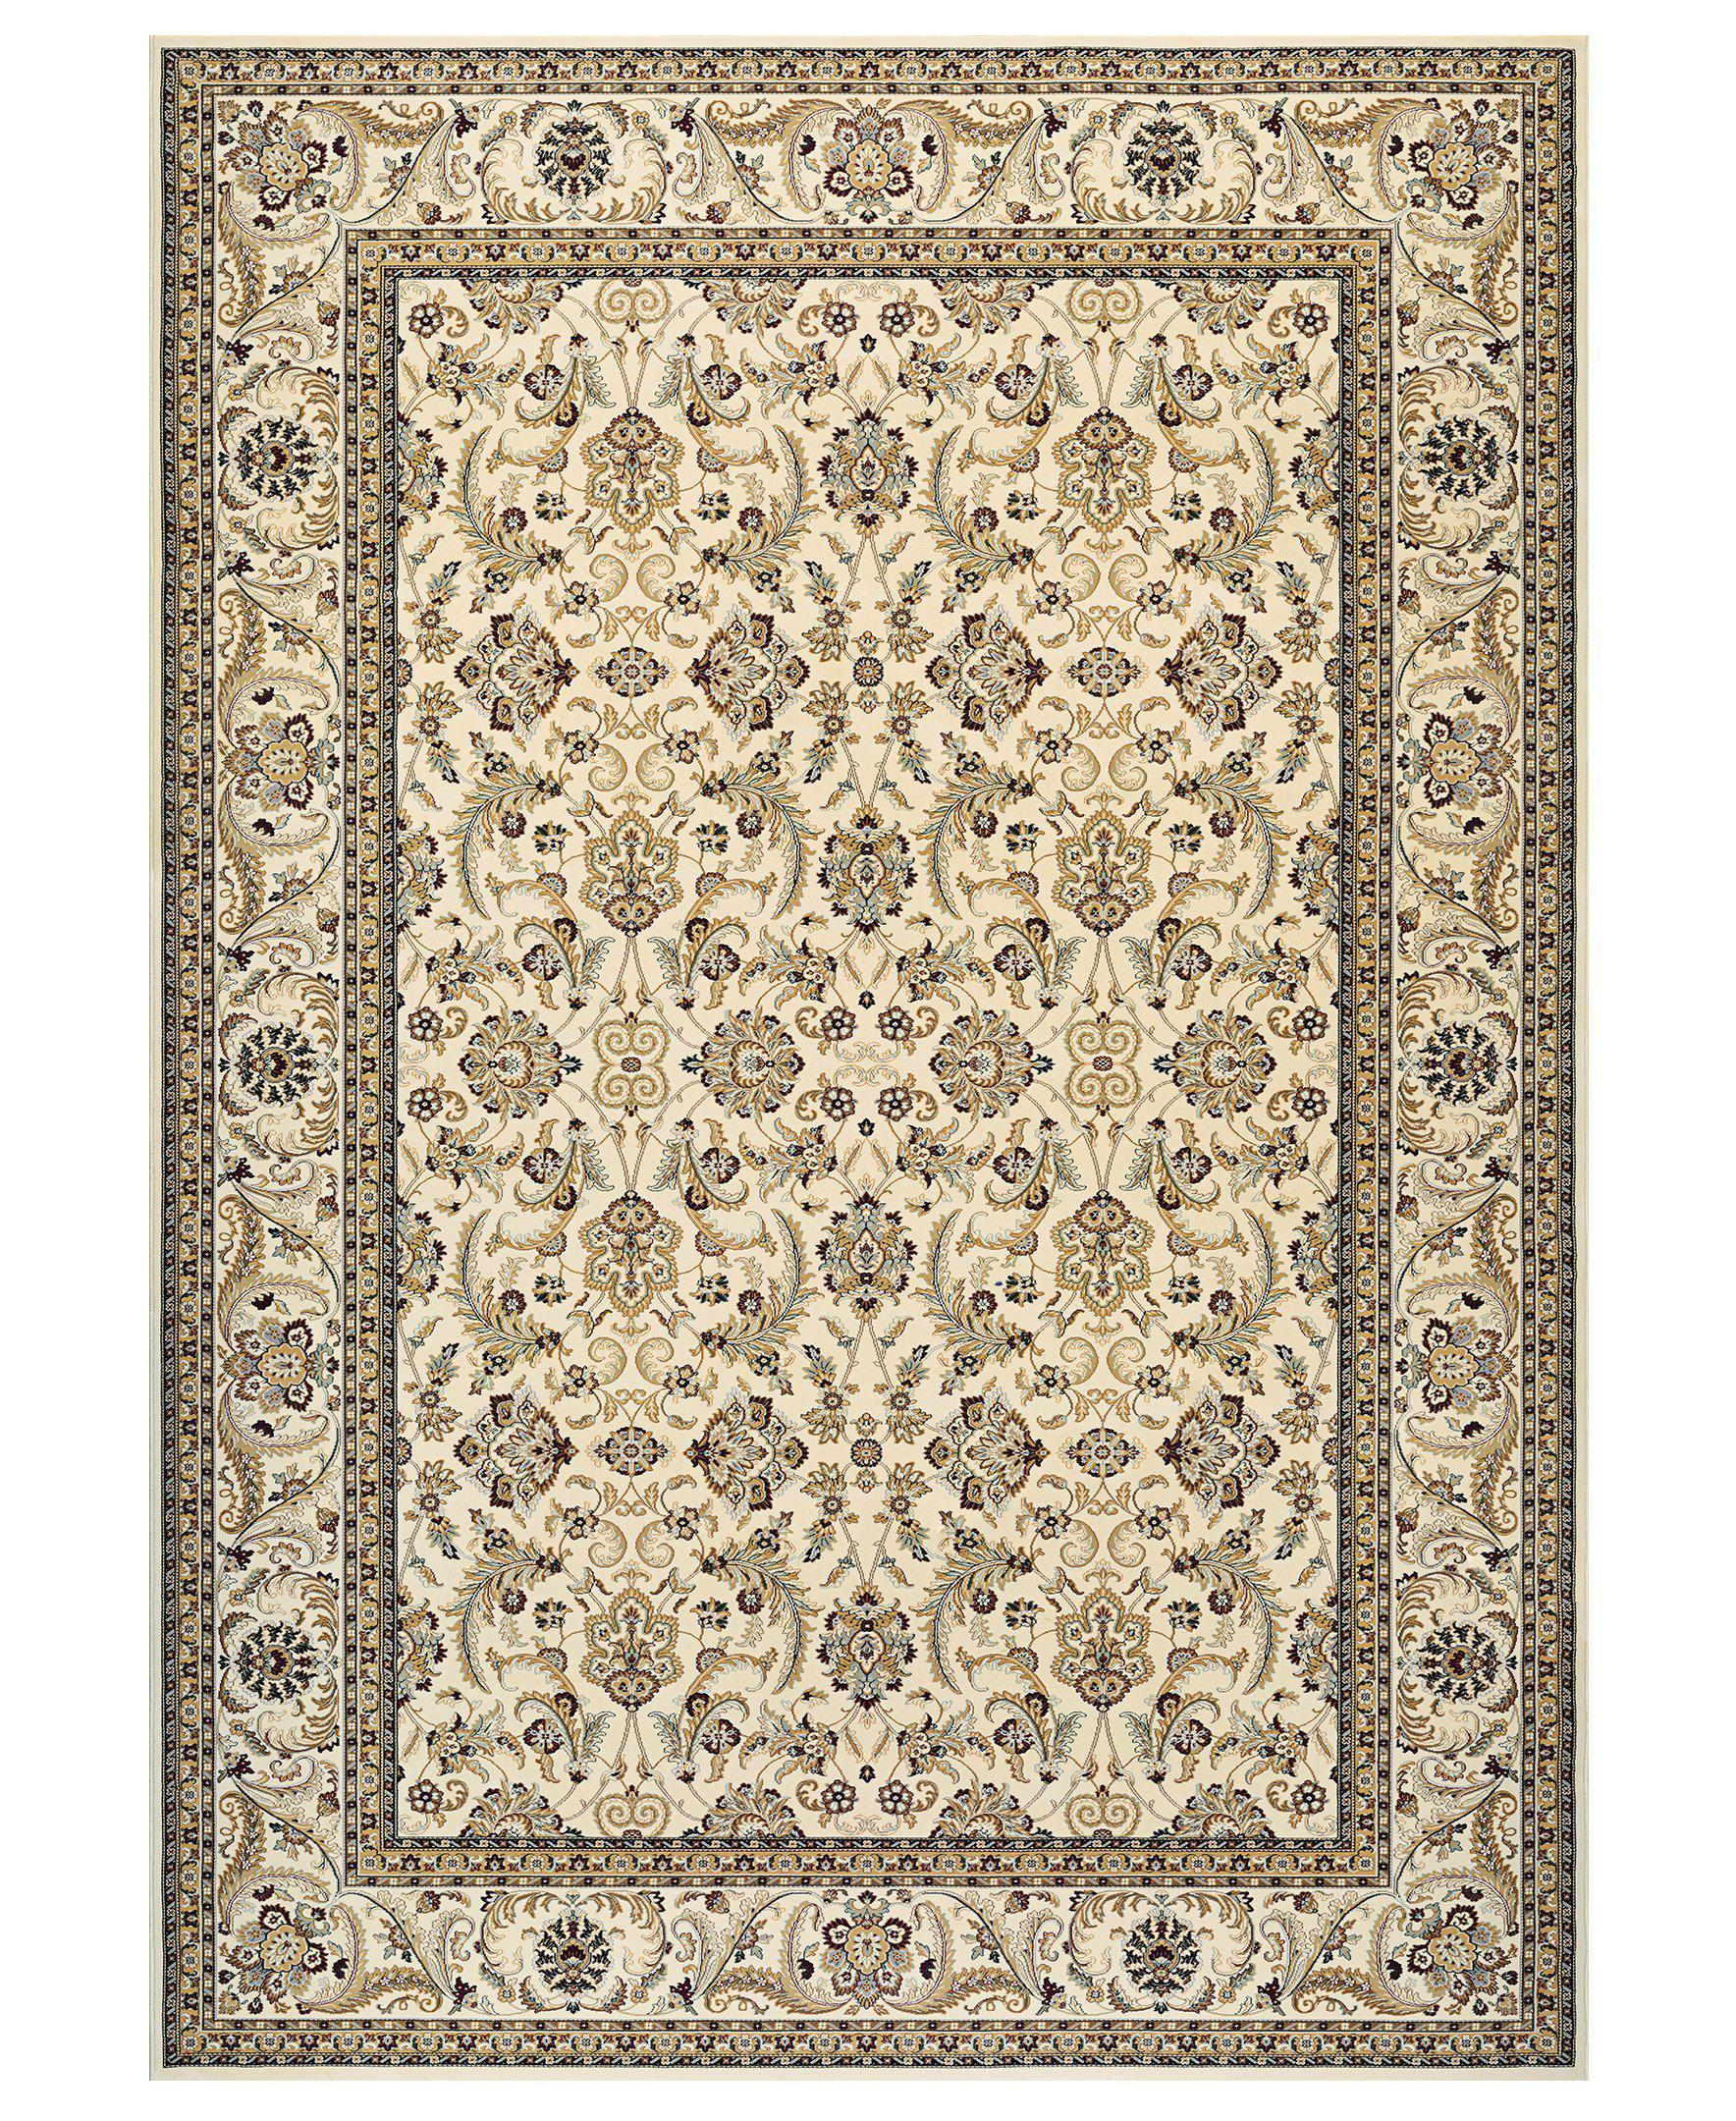 "Antiquity Persian Ivory/Ivory-Area Rugs-The Rug Truck-2' x 3'7""-The Rug Truck"